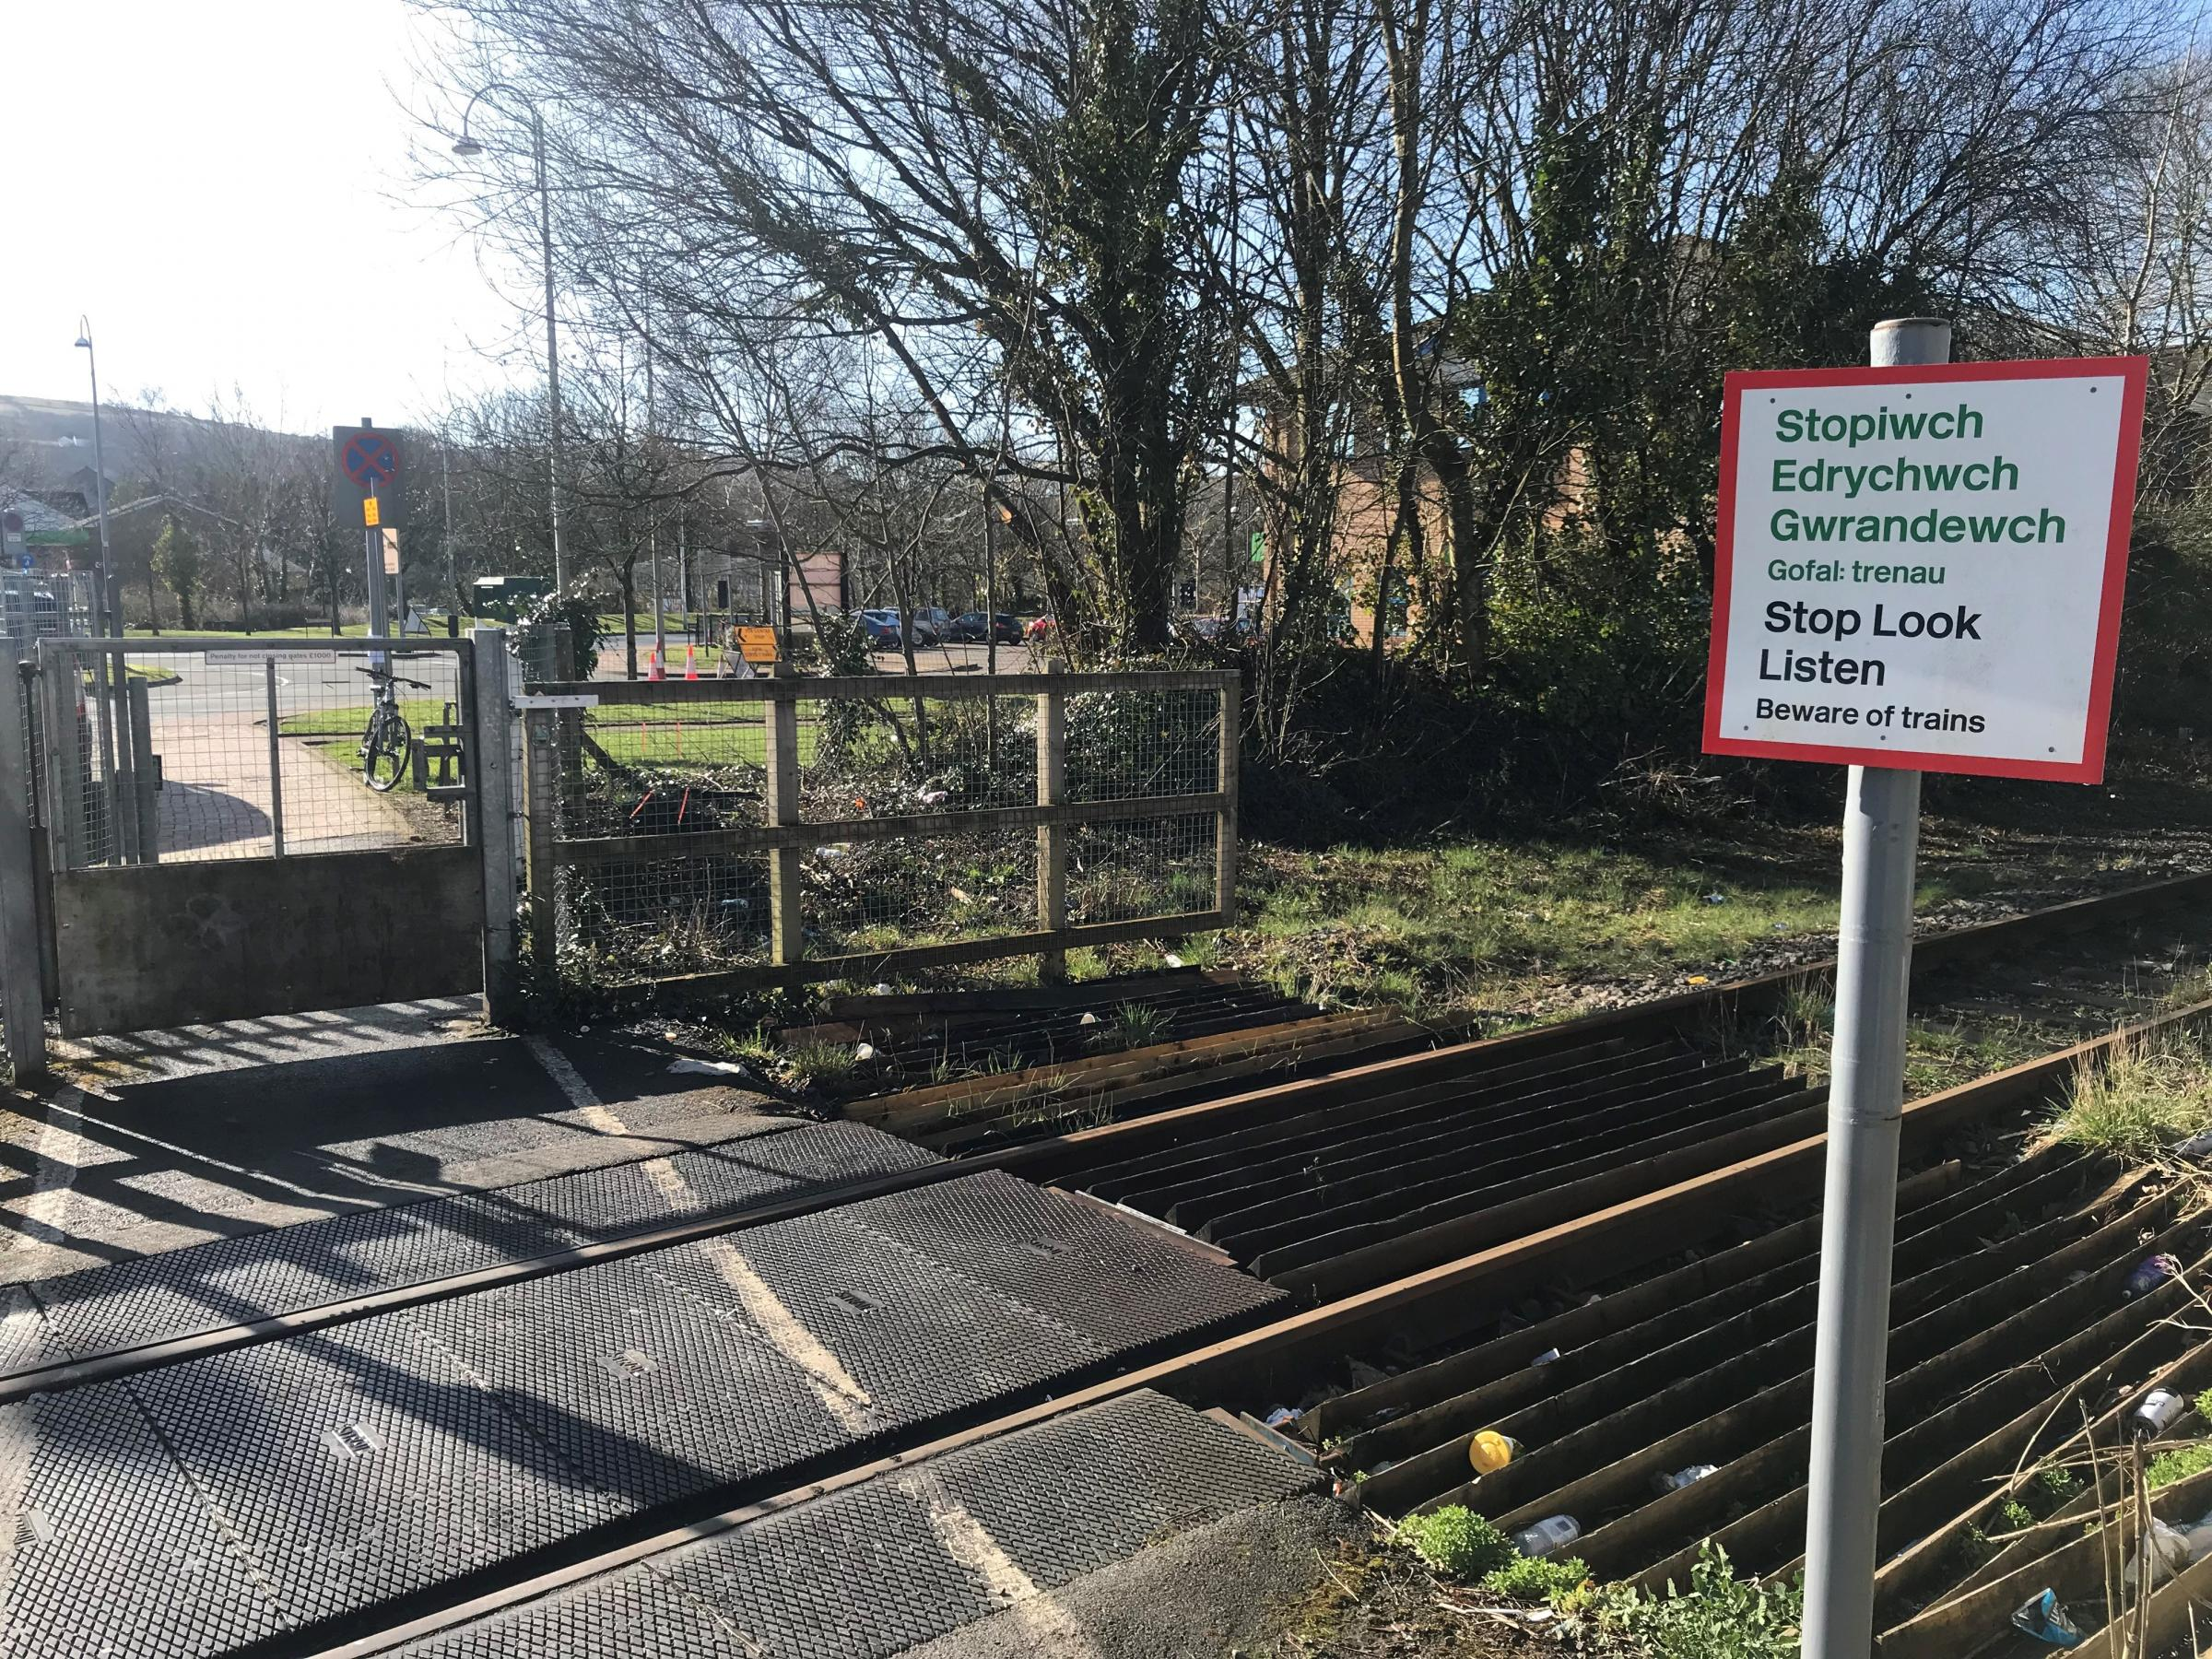 The rail crossing will be closed for three weeks, which business owners say will have an impact on their takings